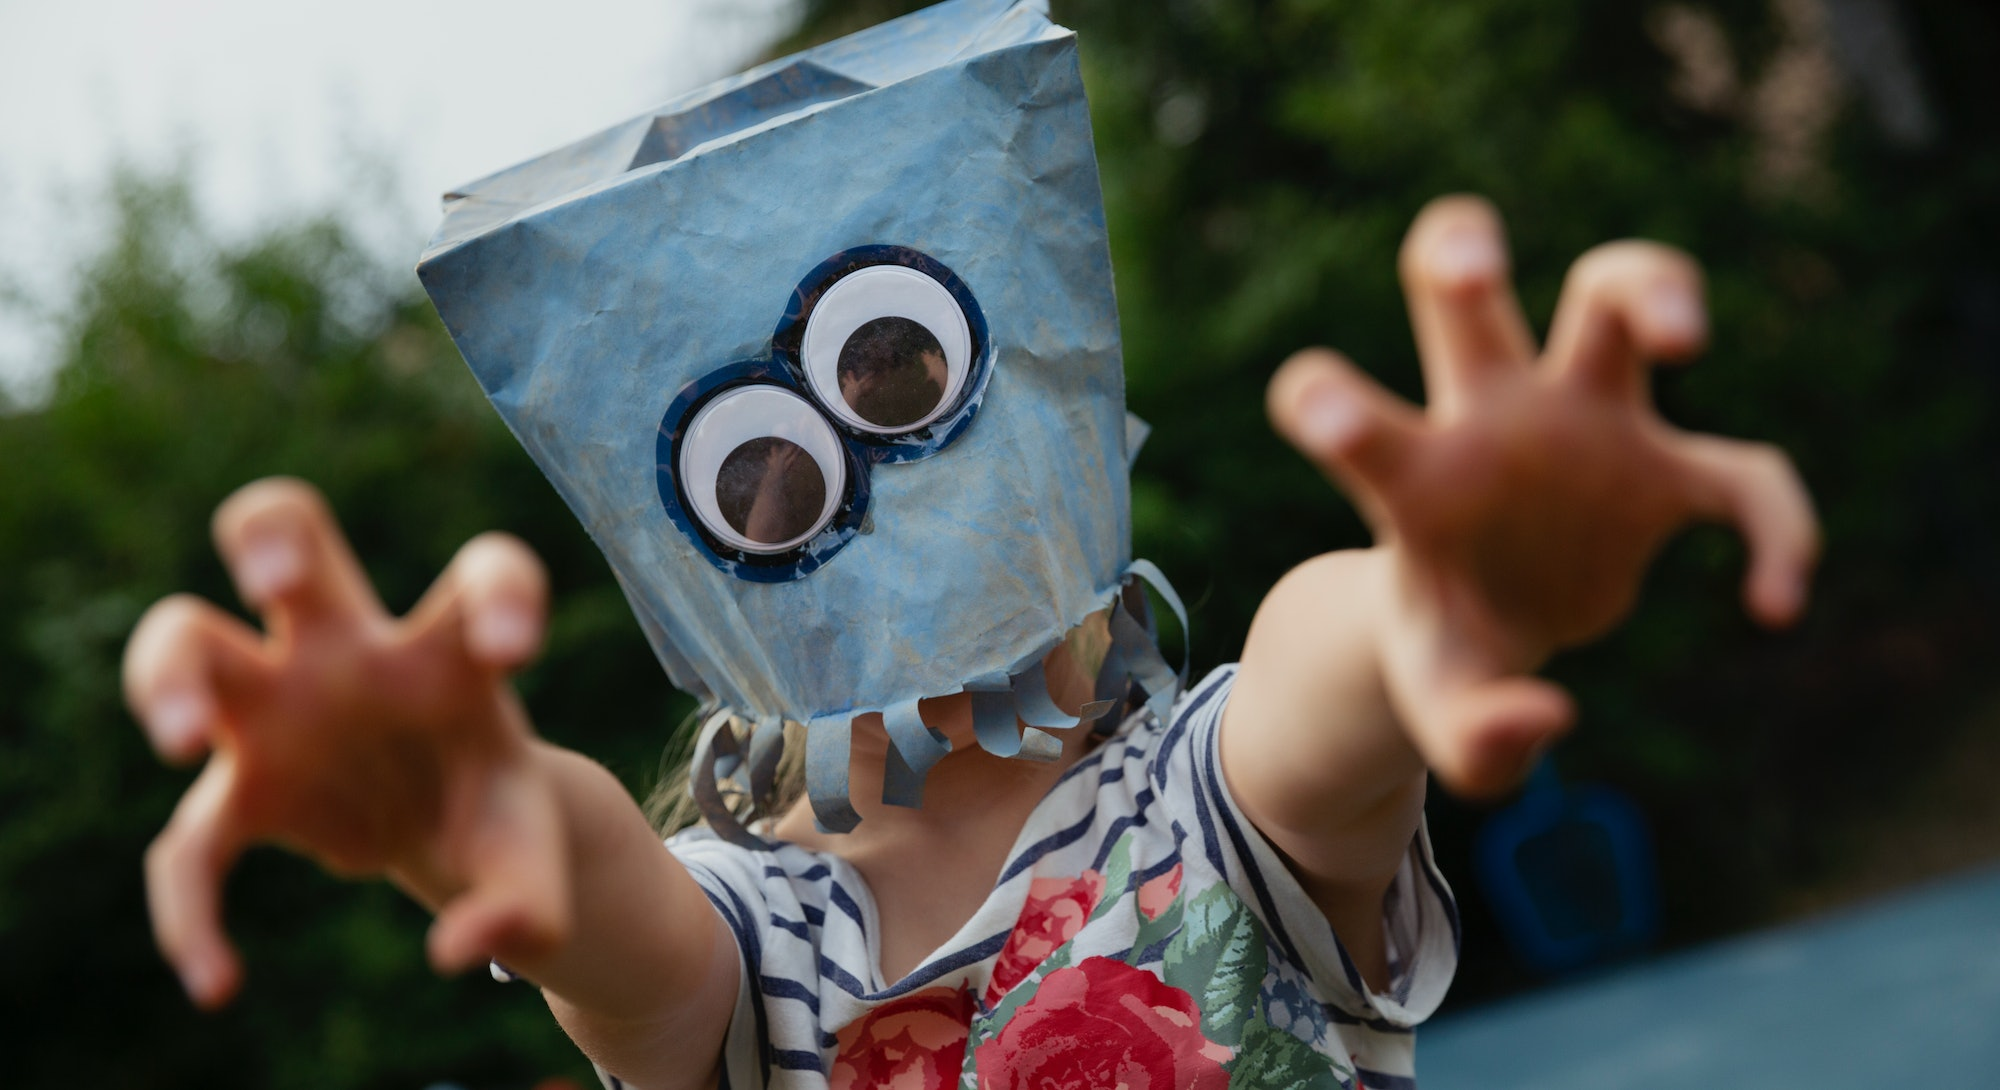 Add googly eyes to a paper bag for a monster mask.